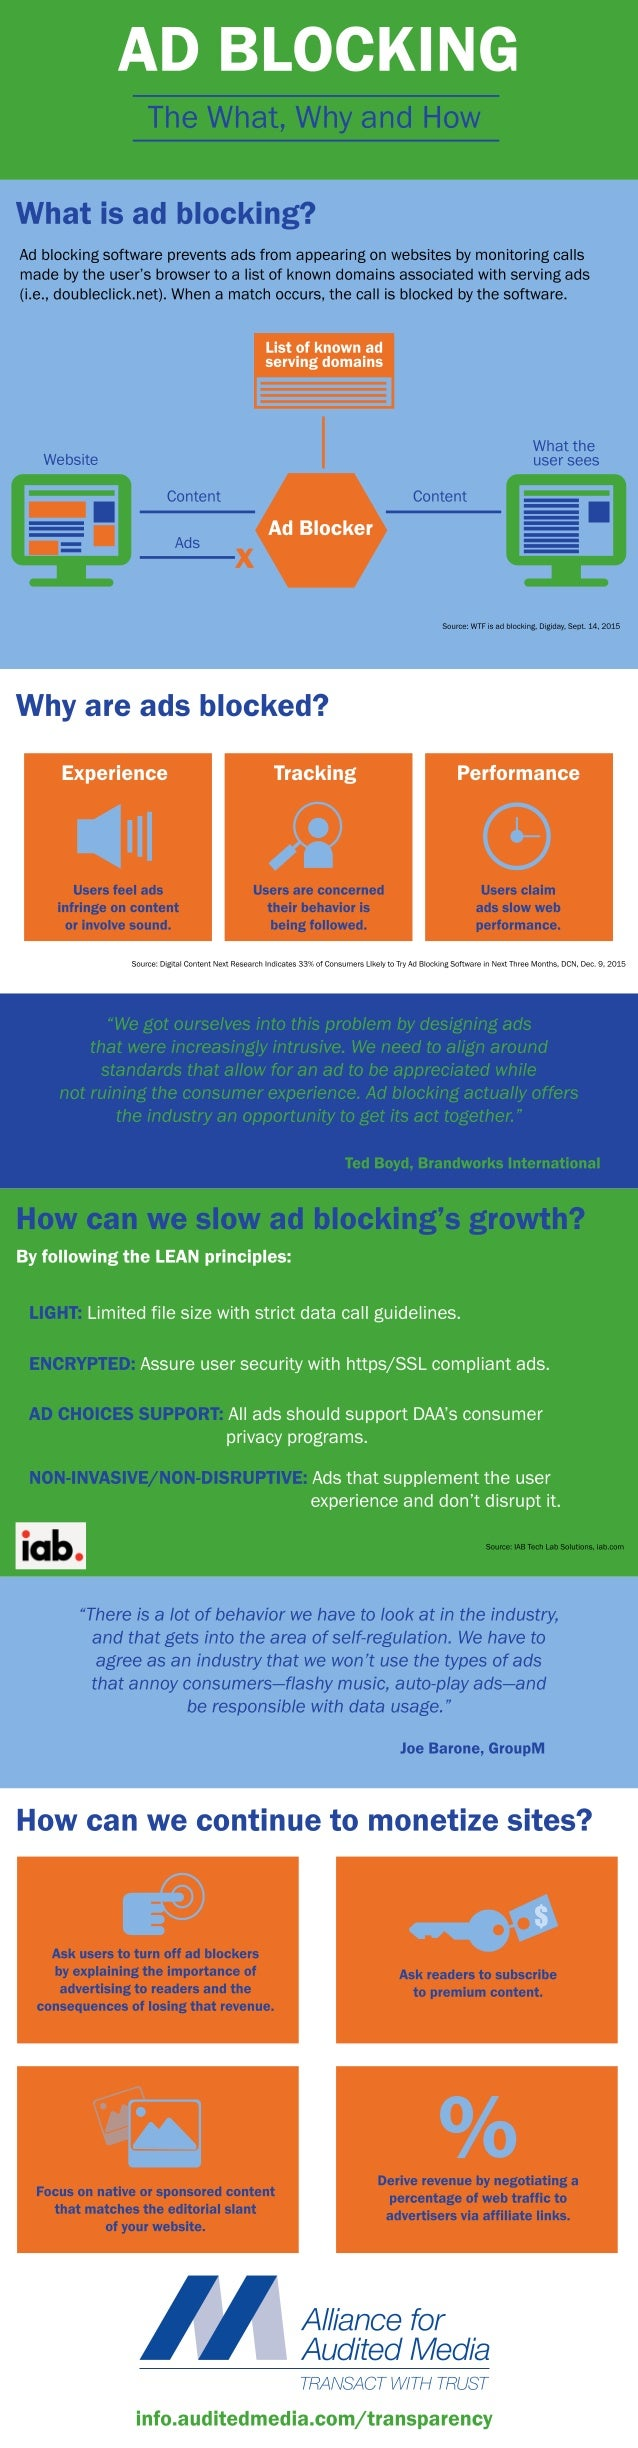 Ad Blocking: The What, Why and How